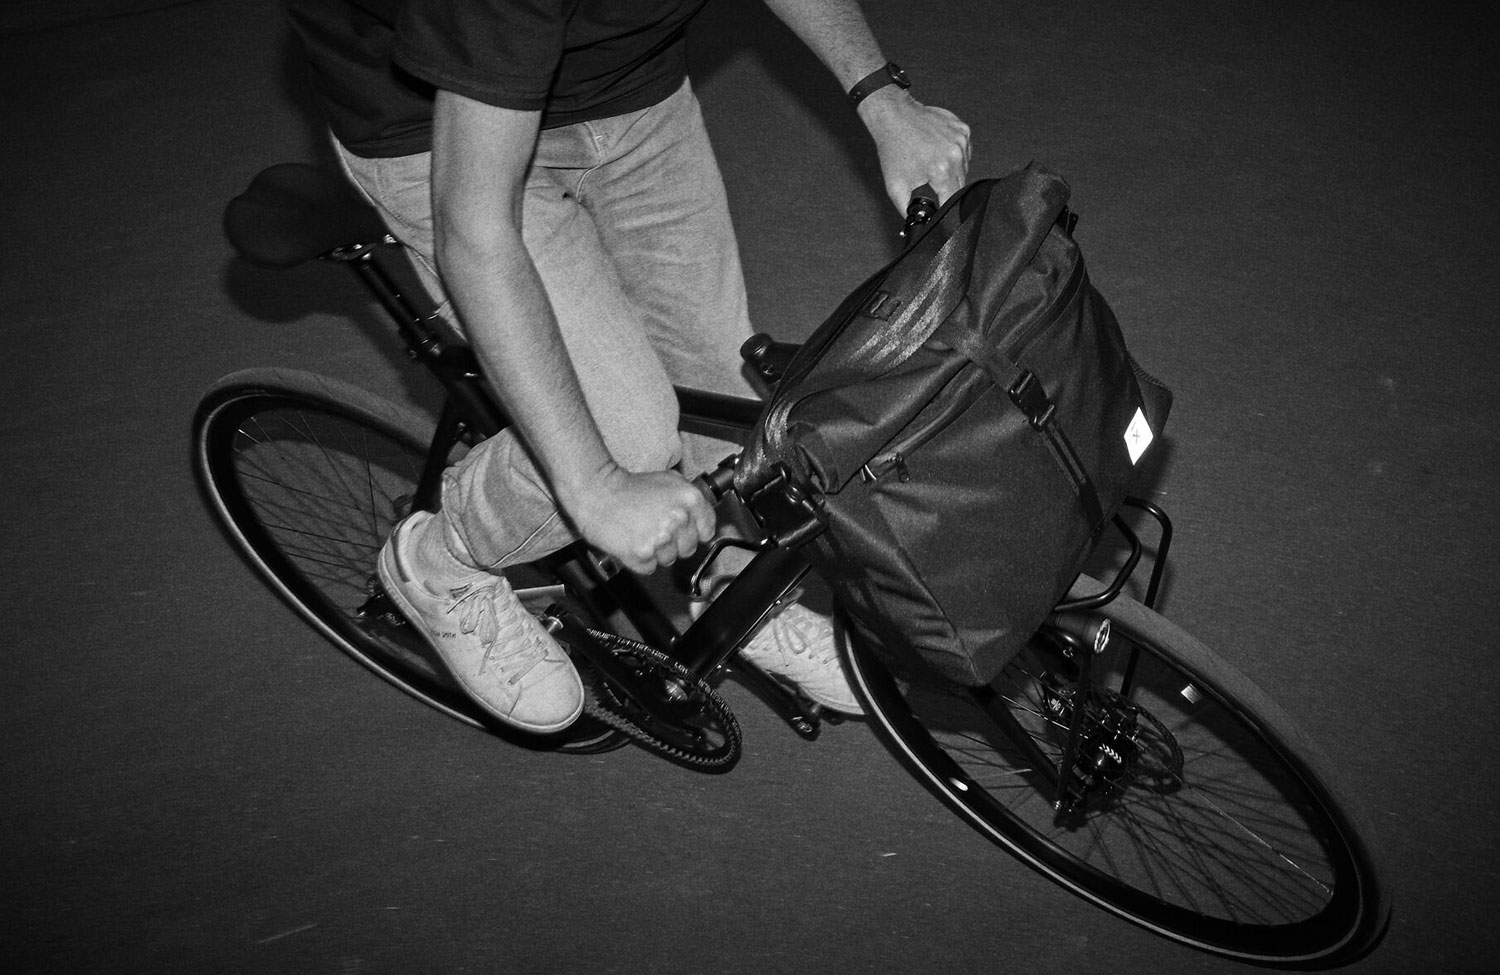 Blinded by the night: Limited Edition Urban Bike von Schindelhauer x HHV